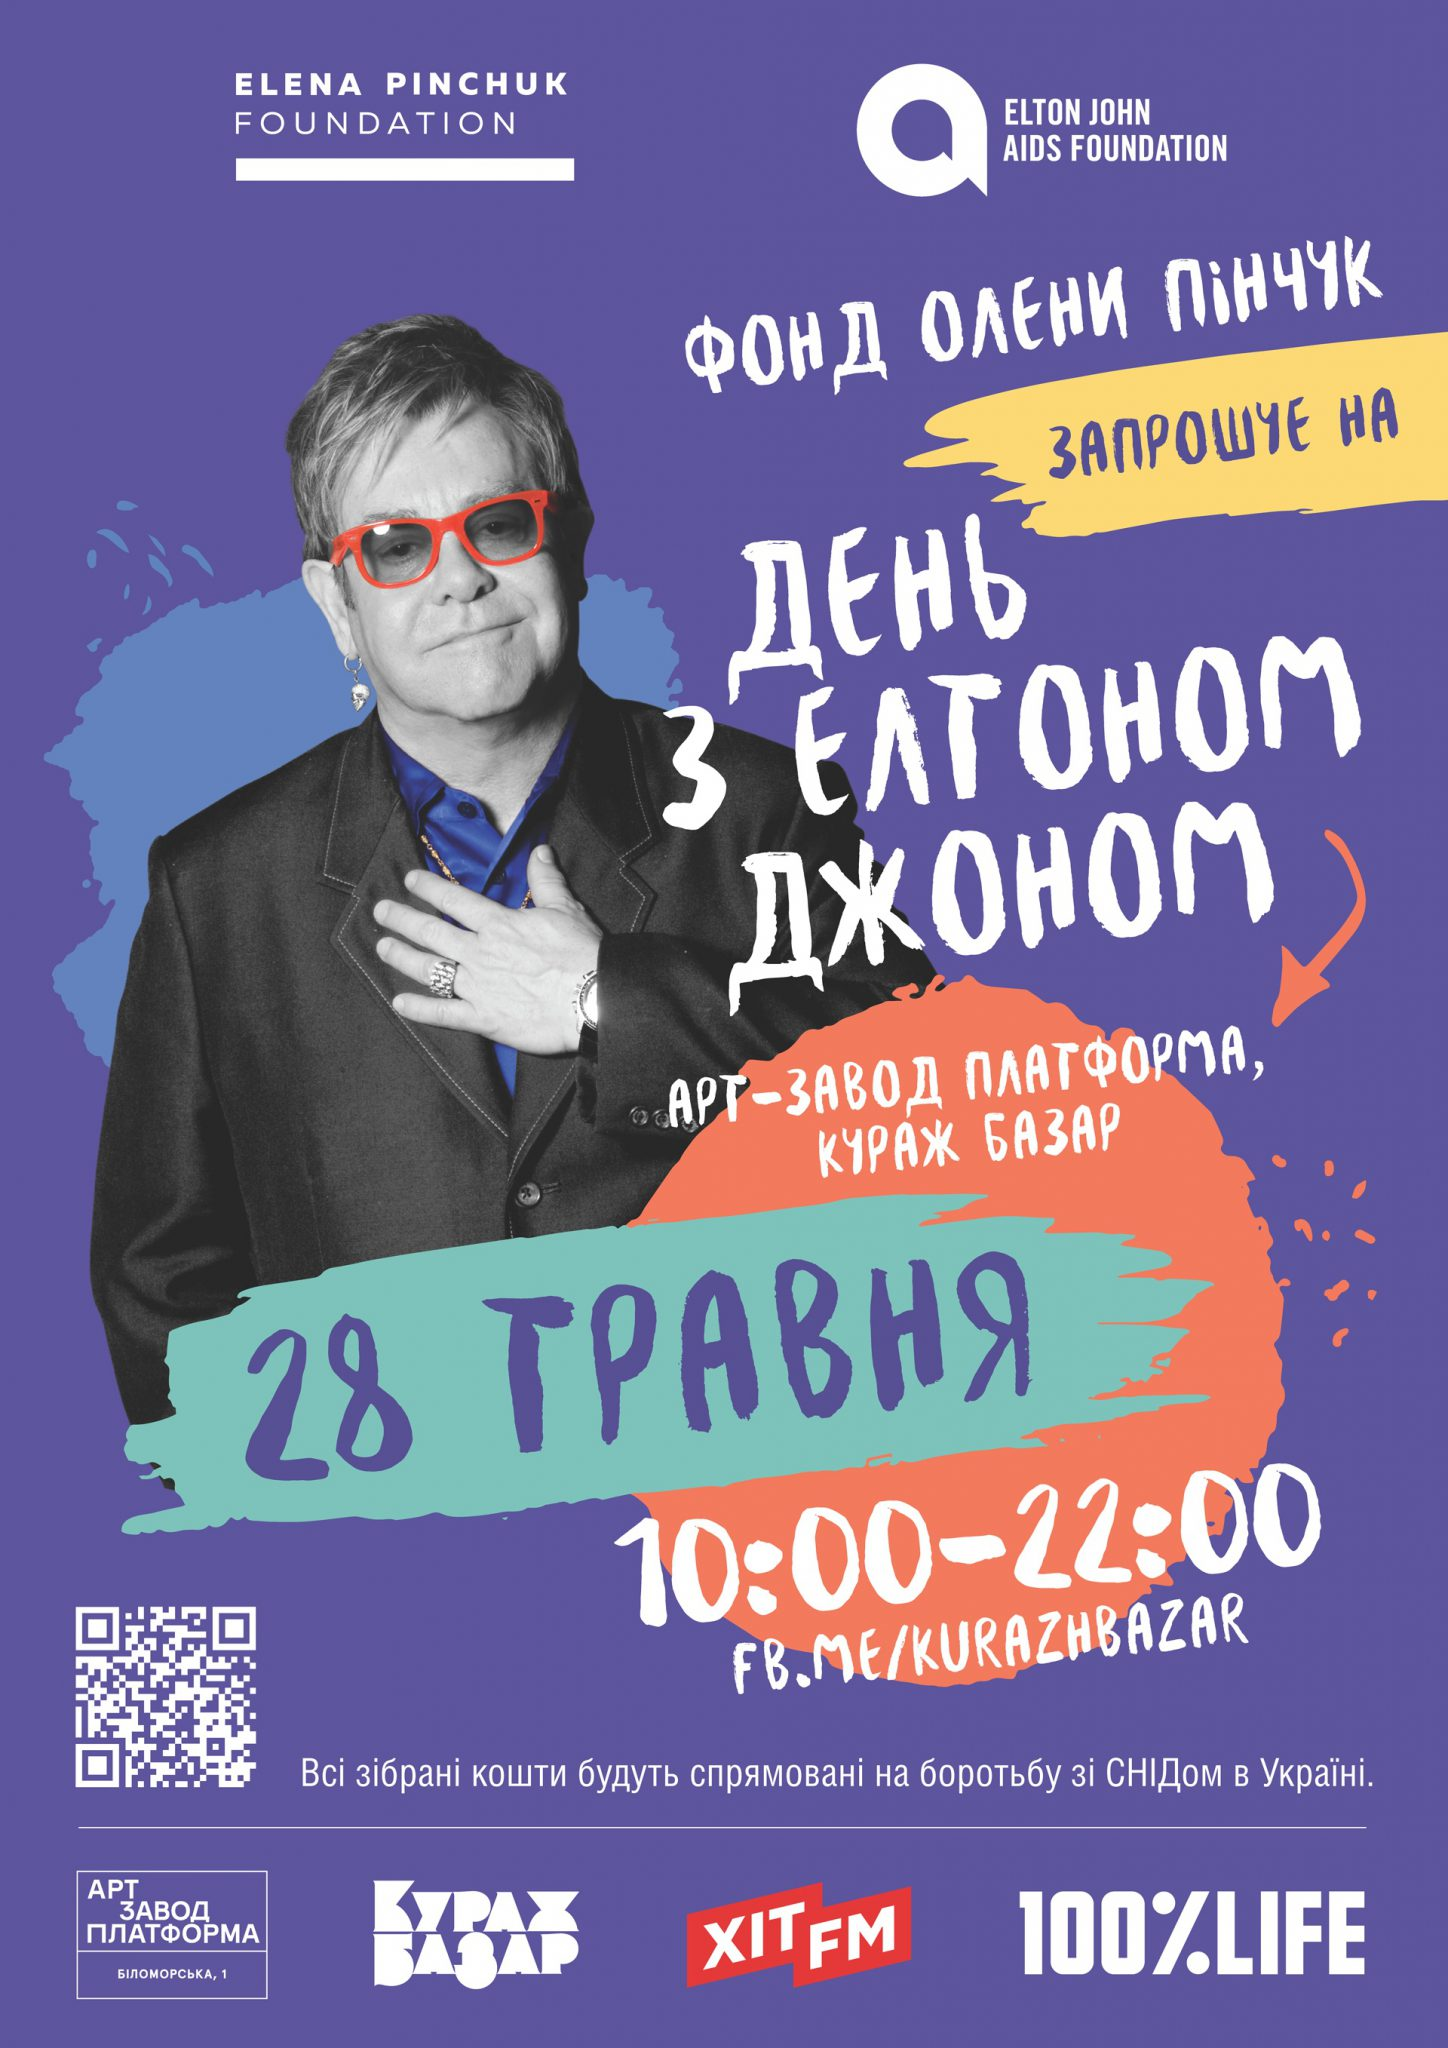 The Day will be held in Kyiv with Elton John